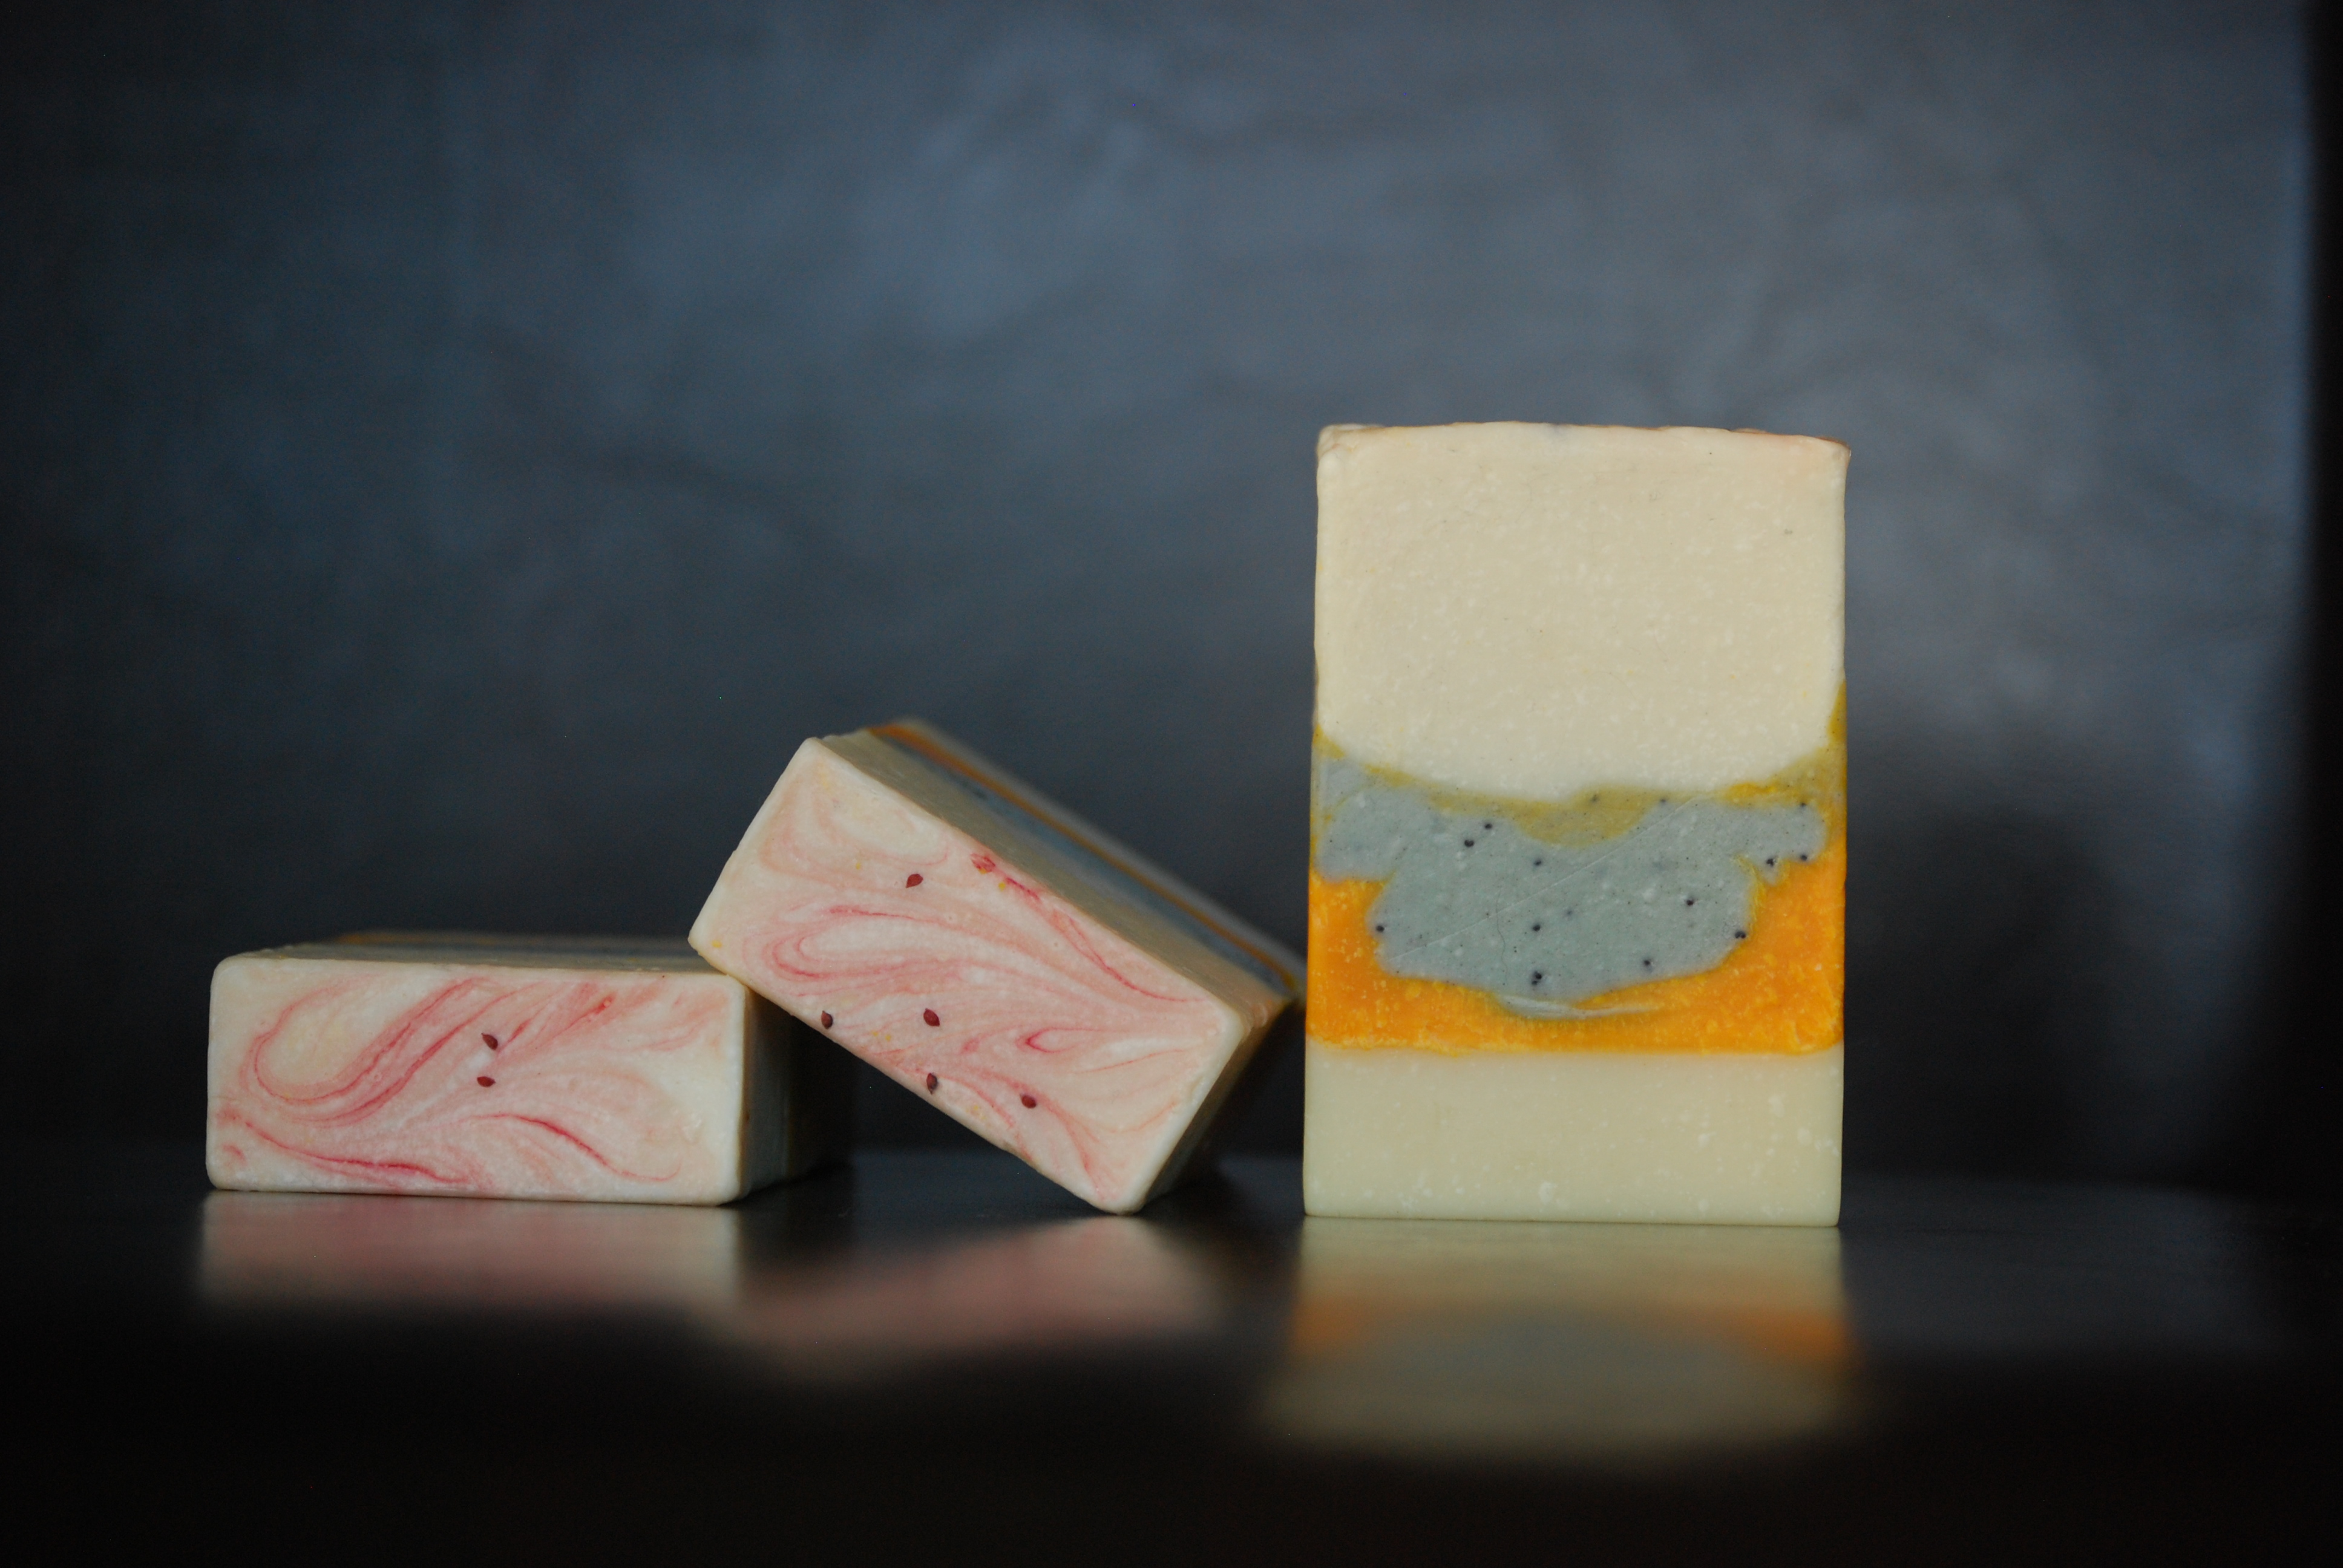 yangtze jasmine milk tea and rice soap